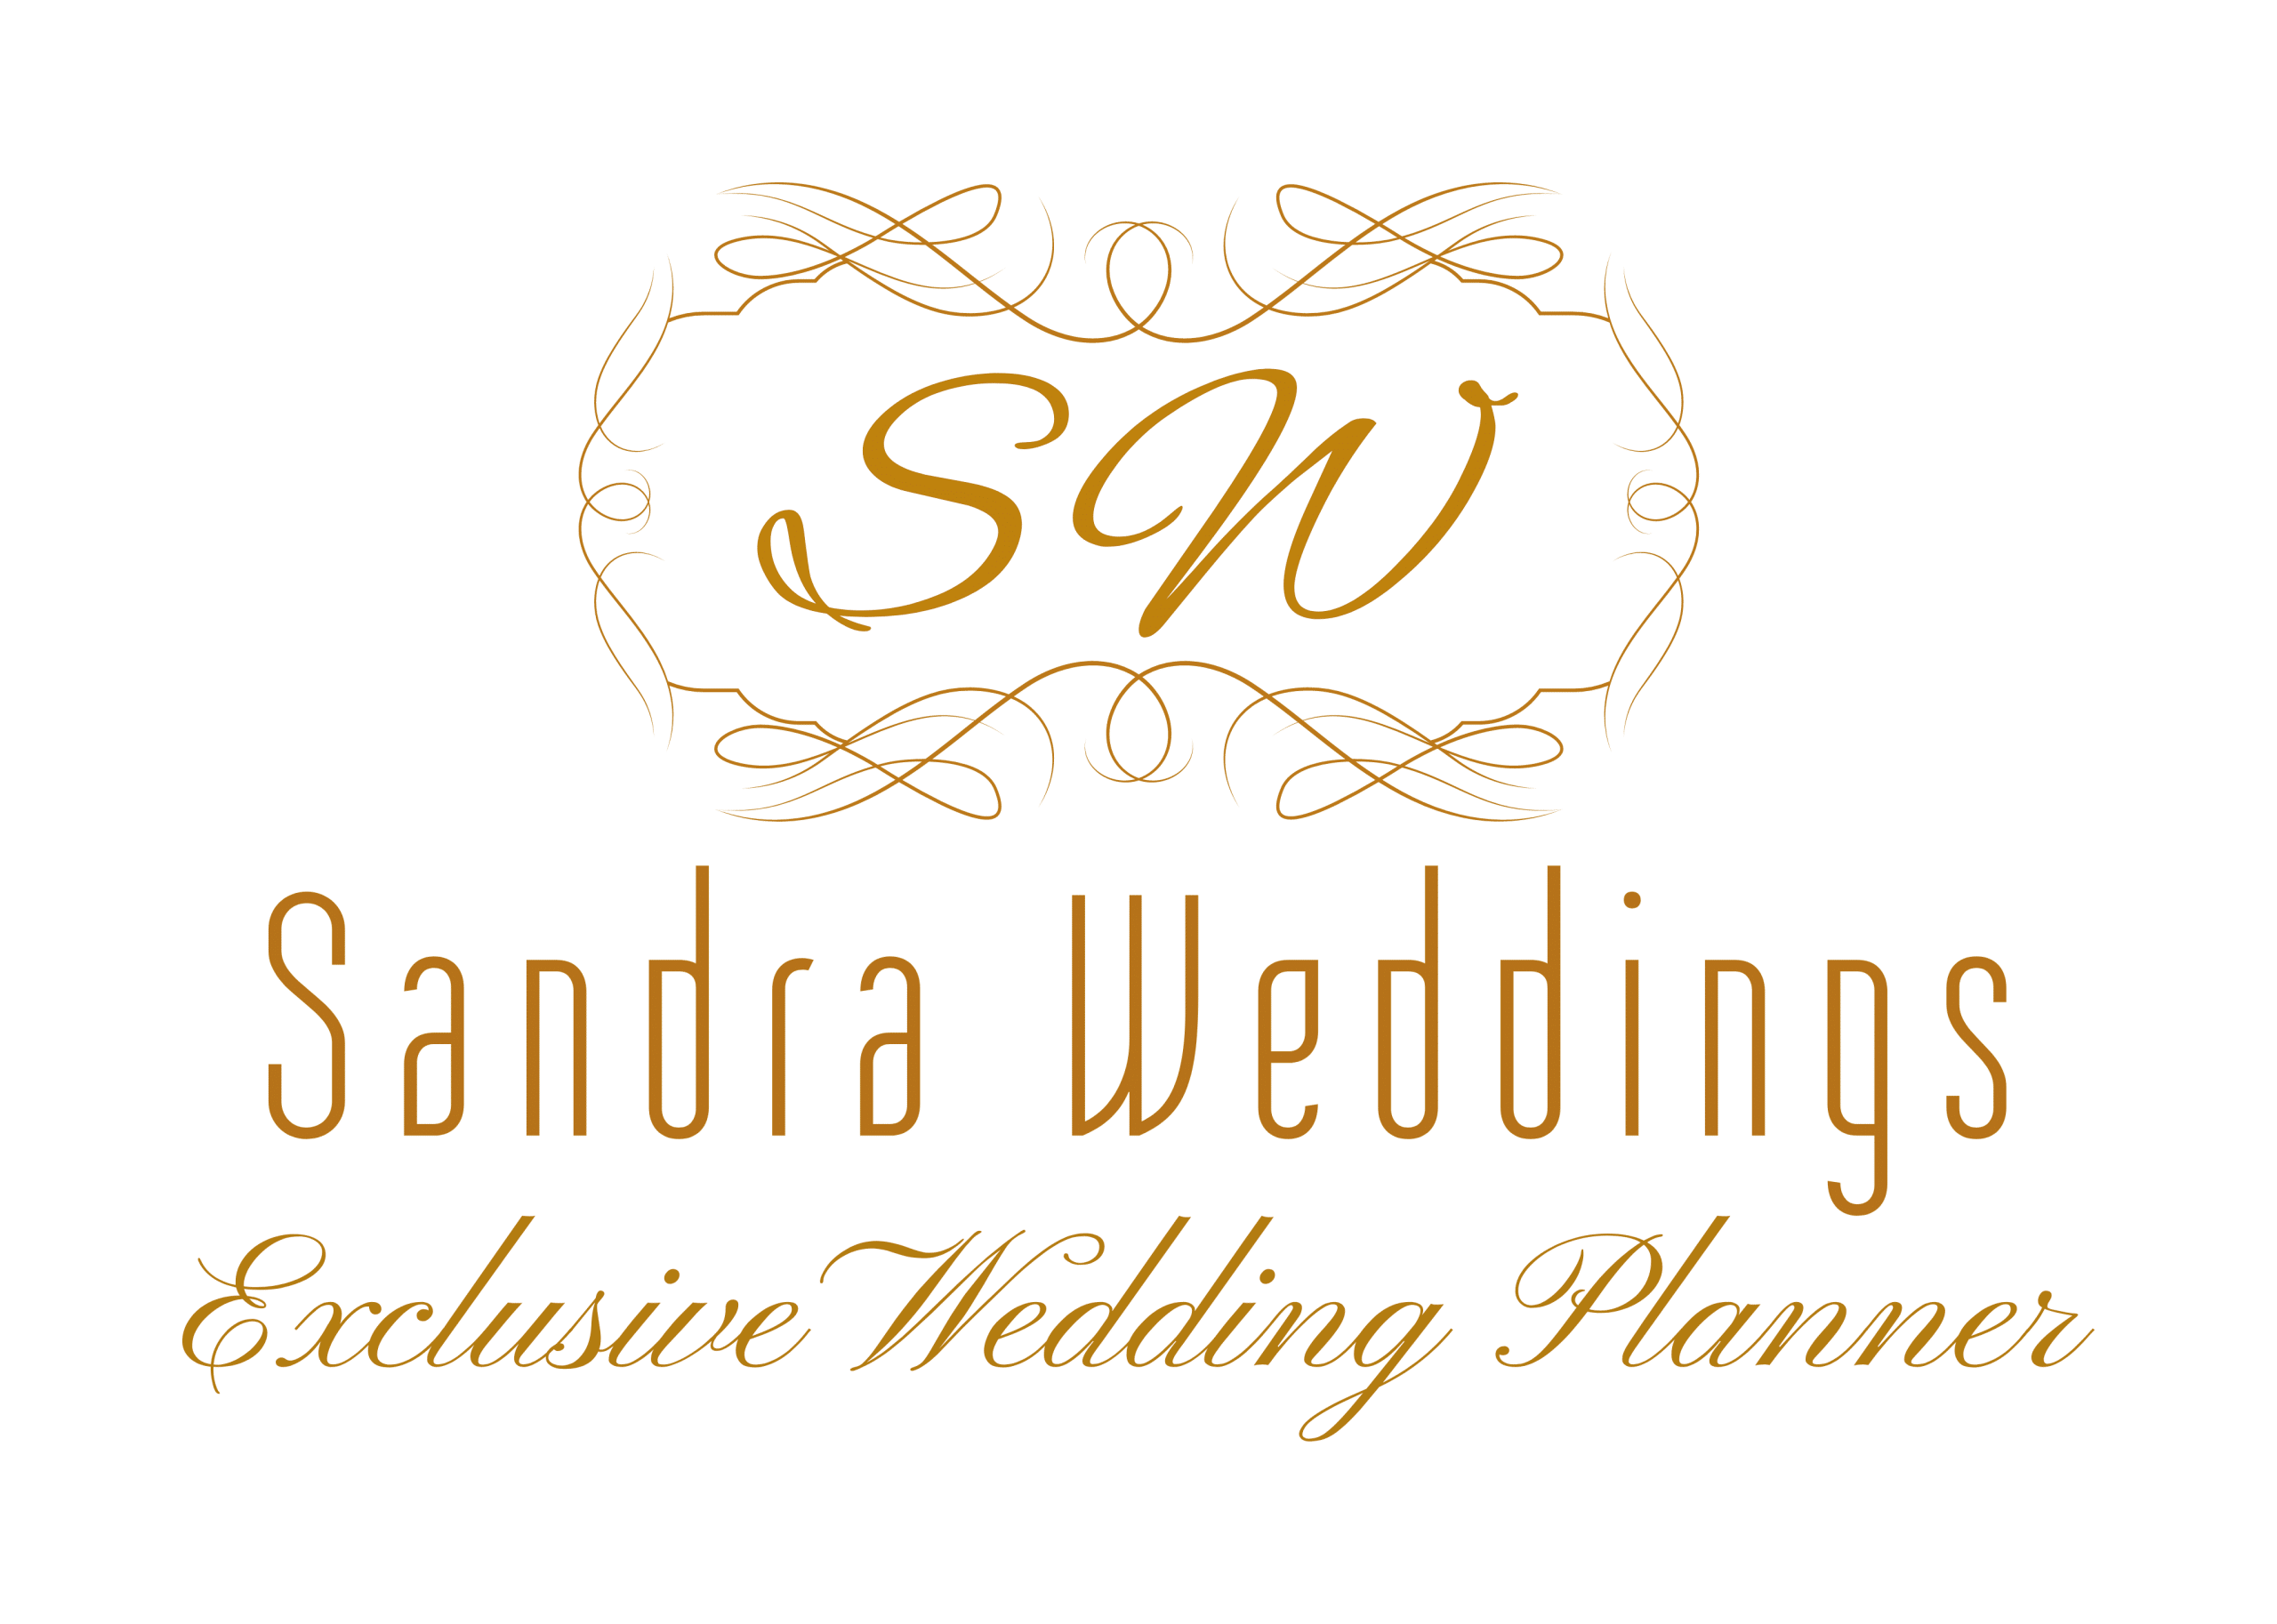 Sandra Weddings - Exclusive Wedding Planner in Tuscany